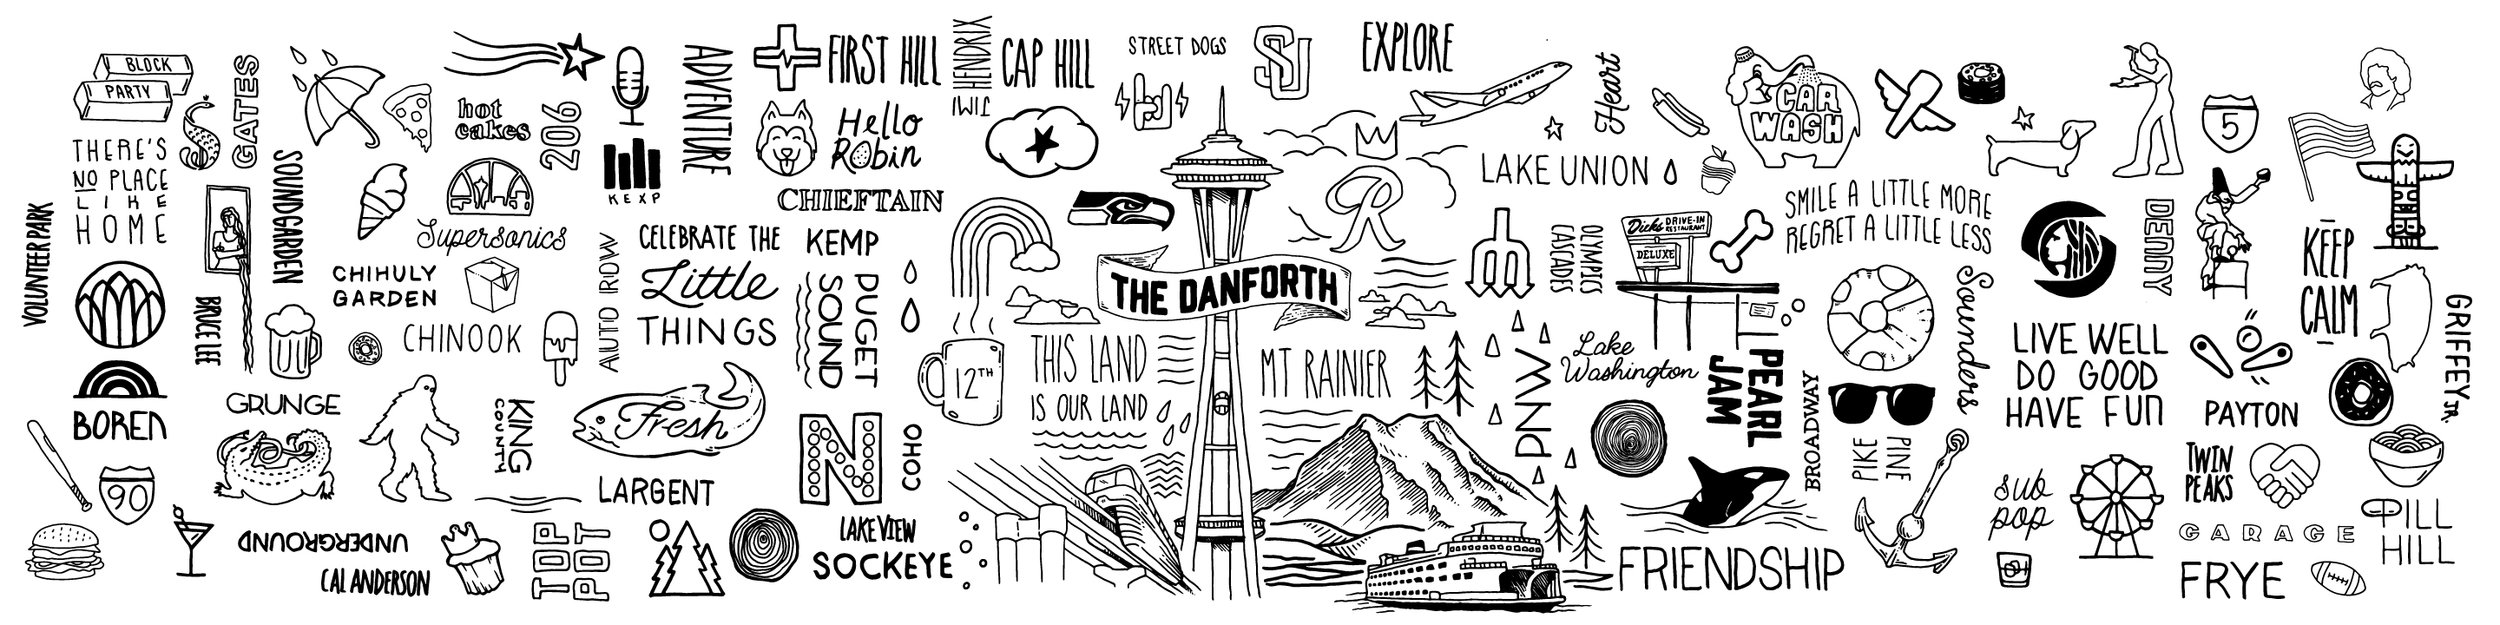 Mural Design for the Danforth apartments - Seattle WA